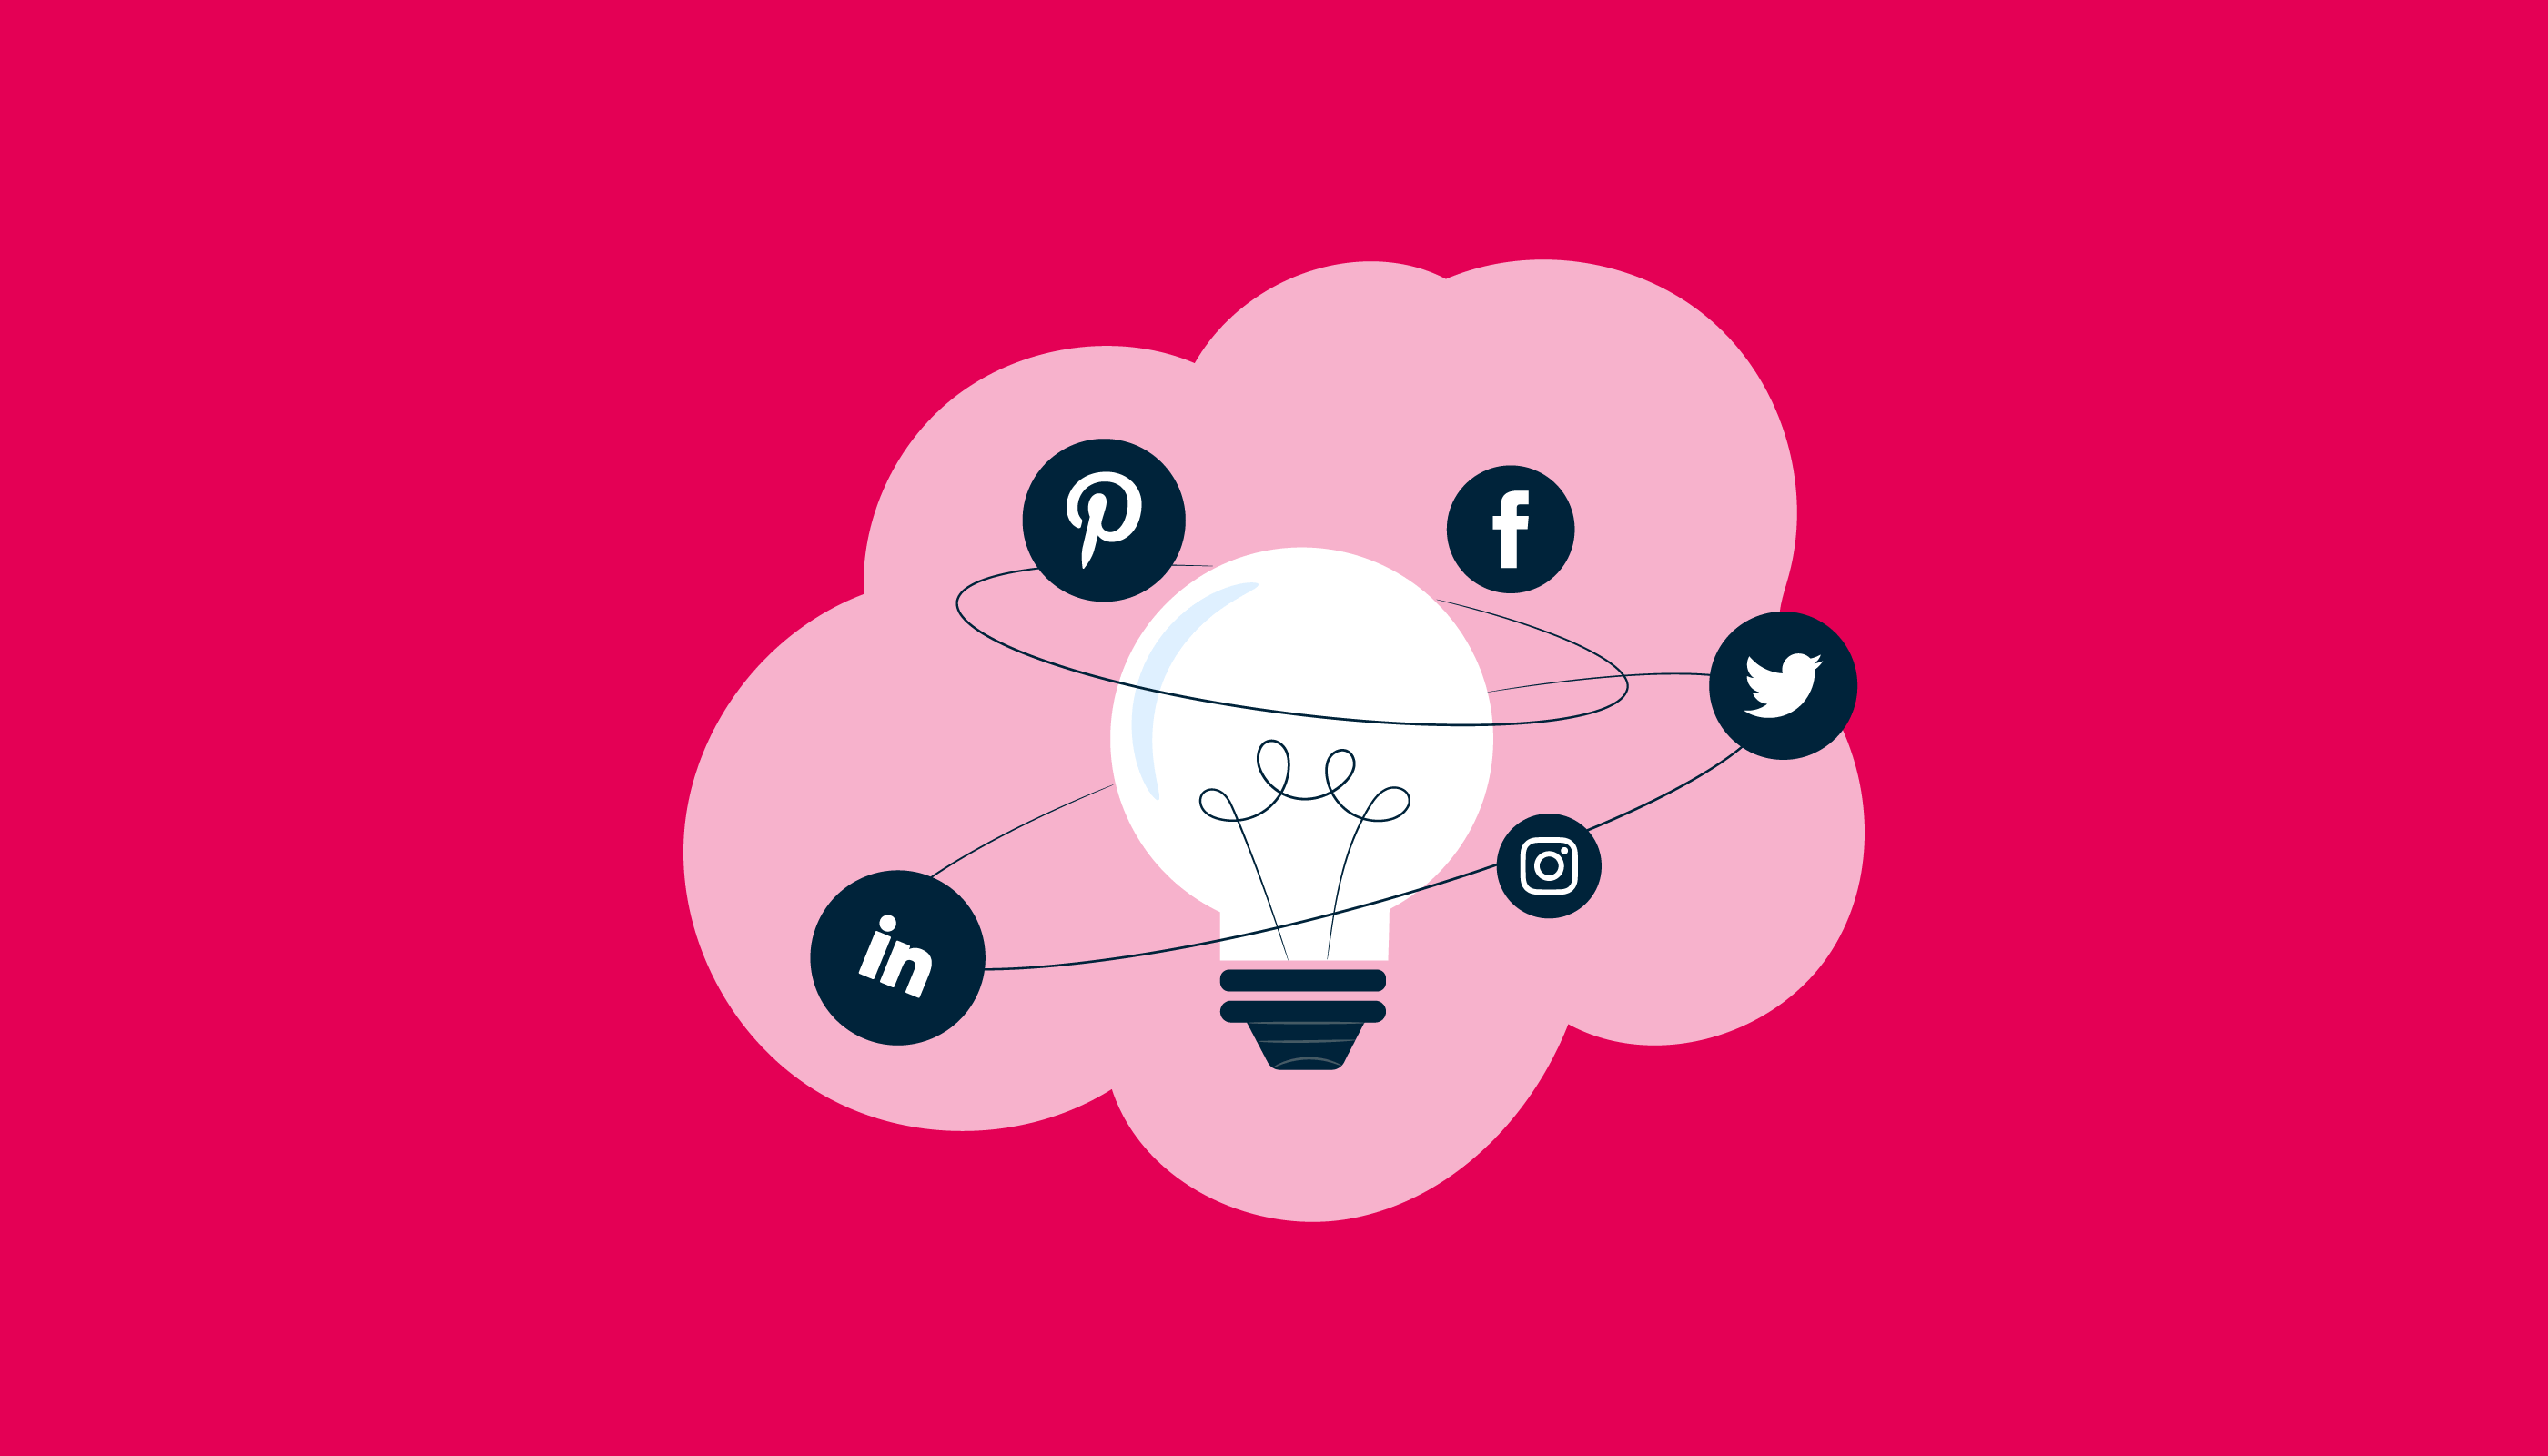 content marketing cloud featuring social media icons with a bulb in the middle